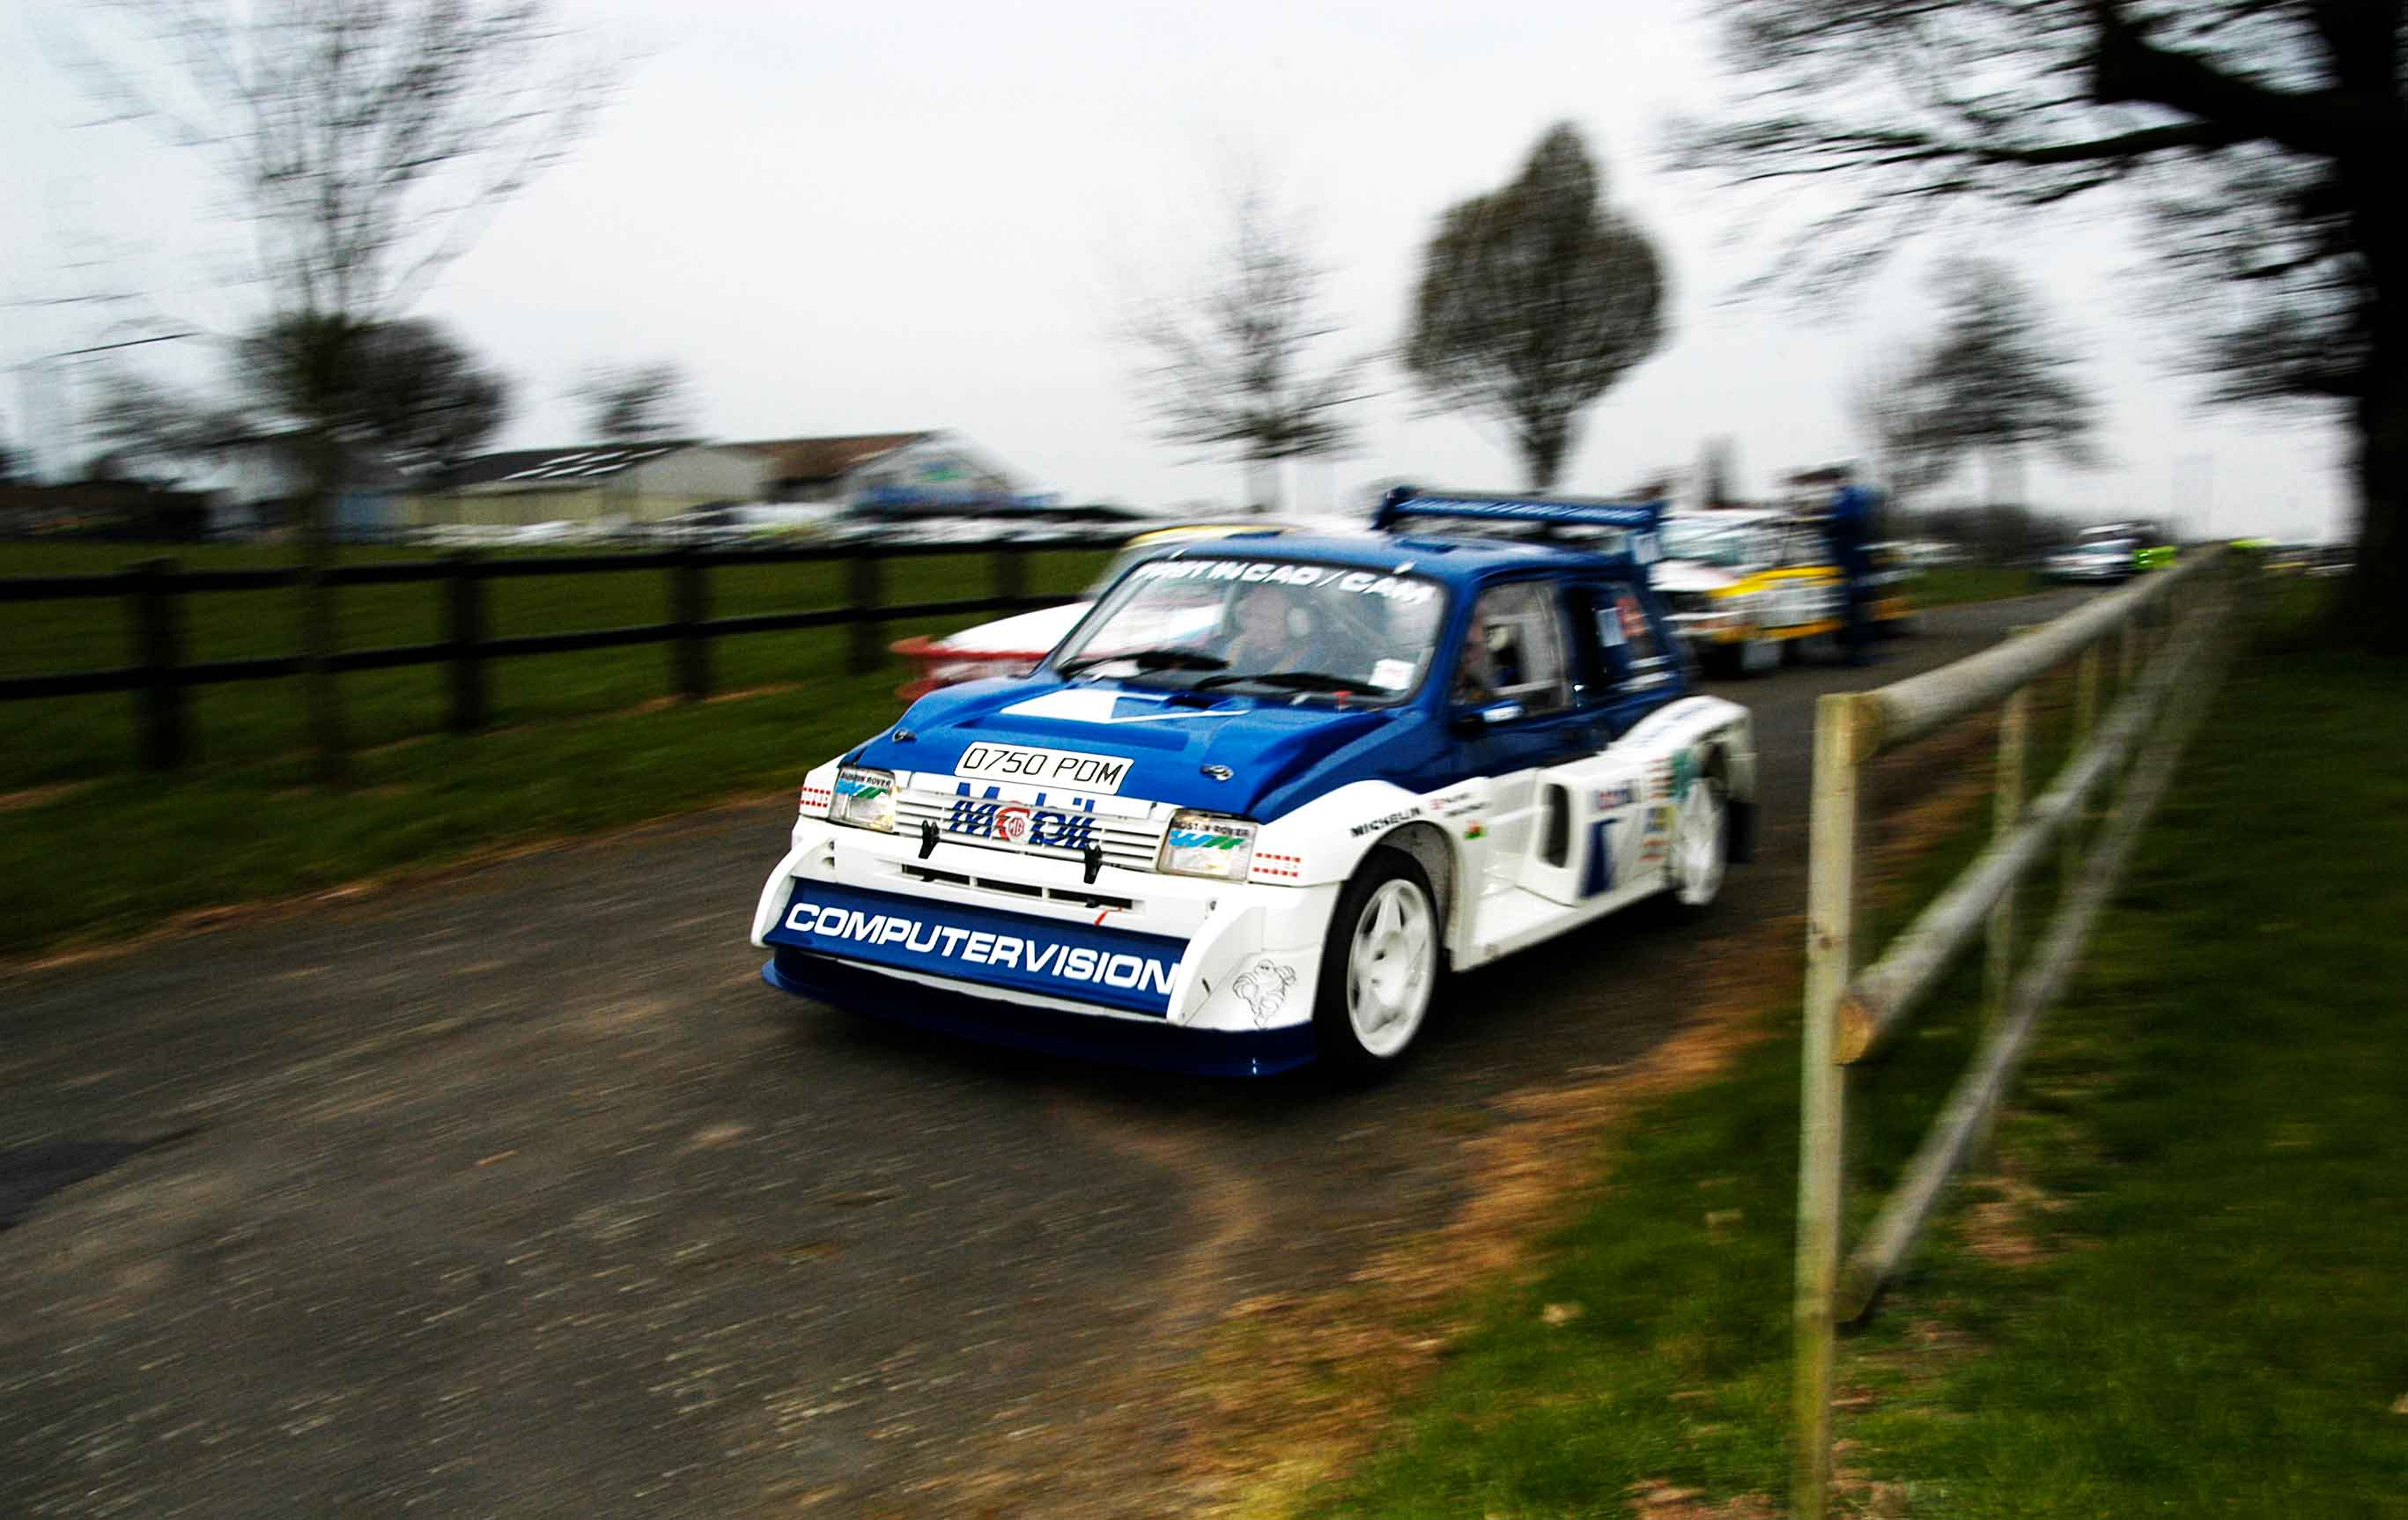 MG Metro 6R4 photo by automotive journalist Andrew Noakes